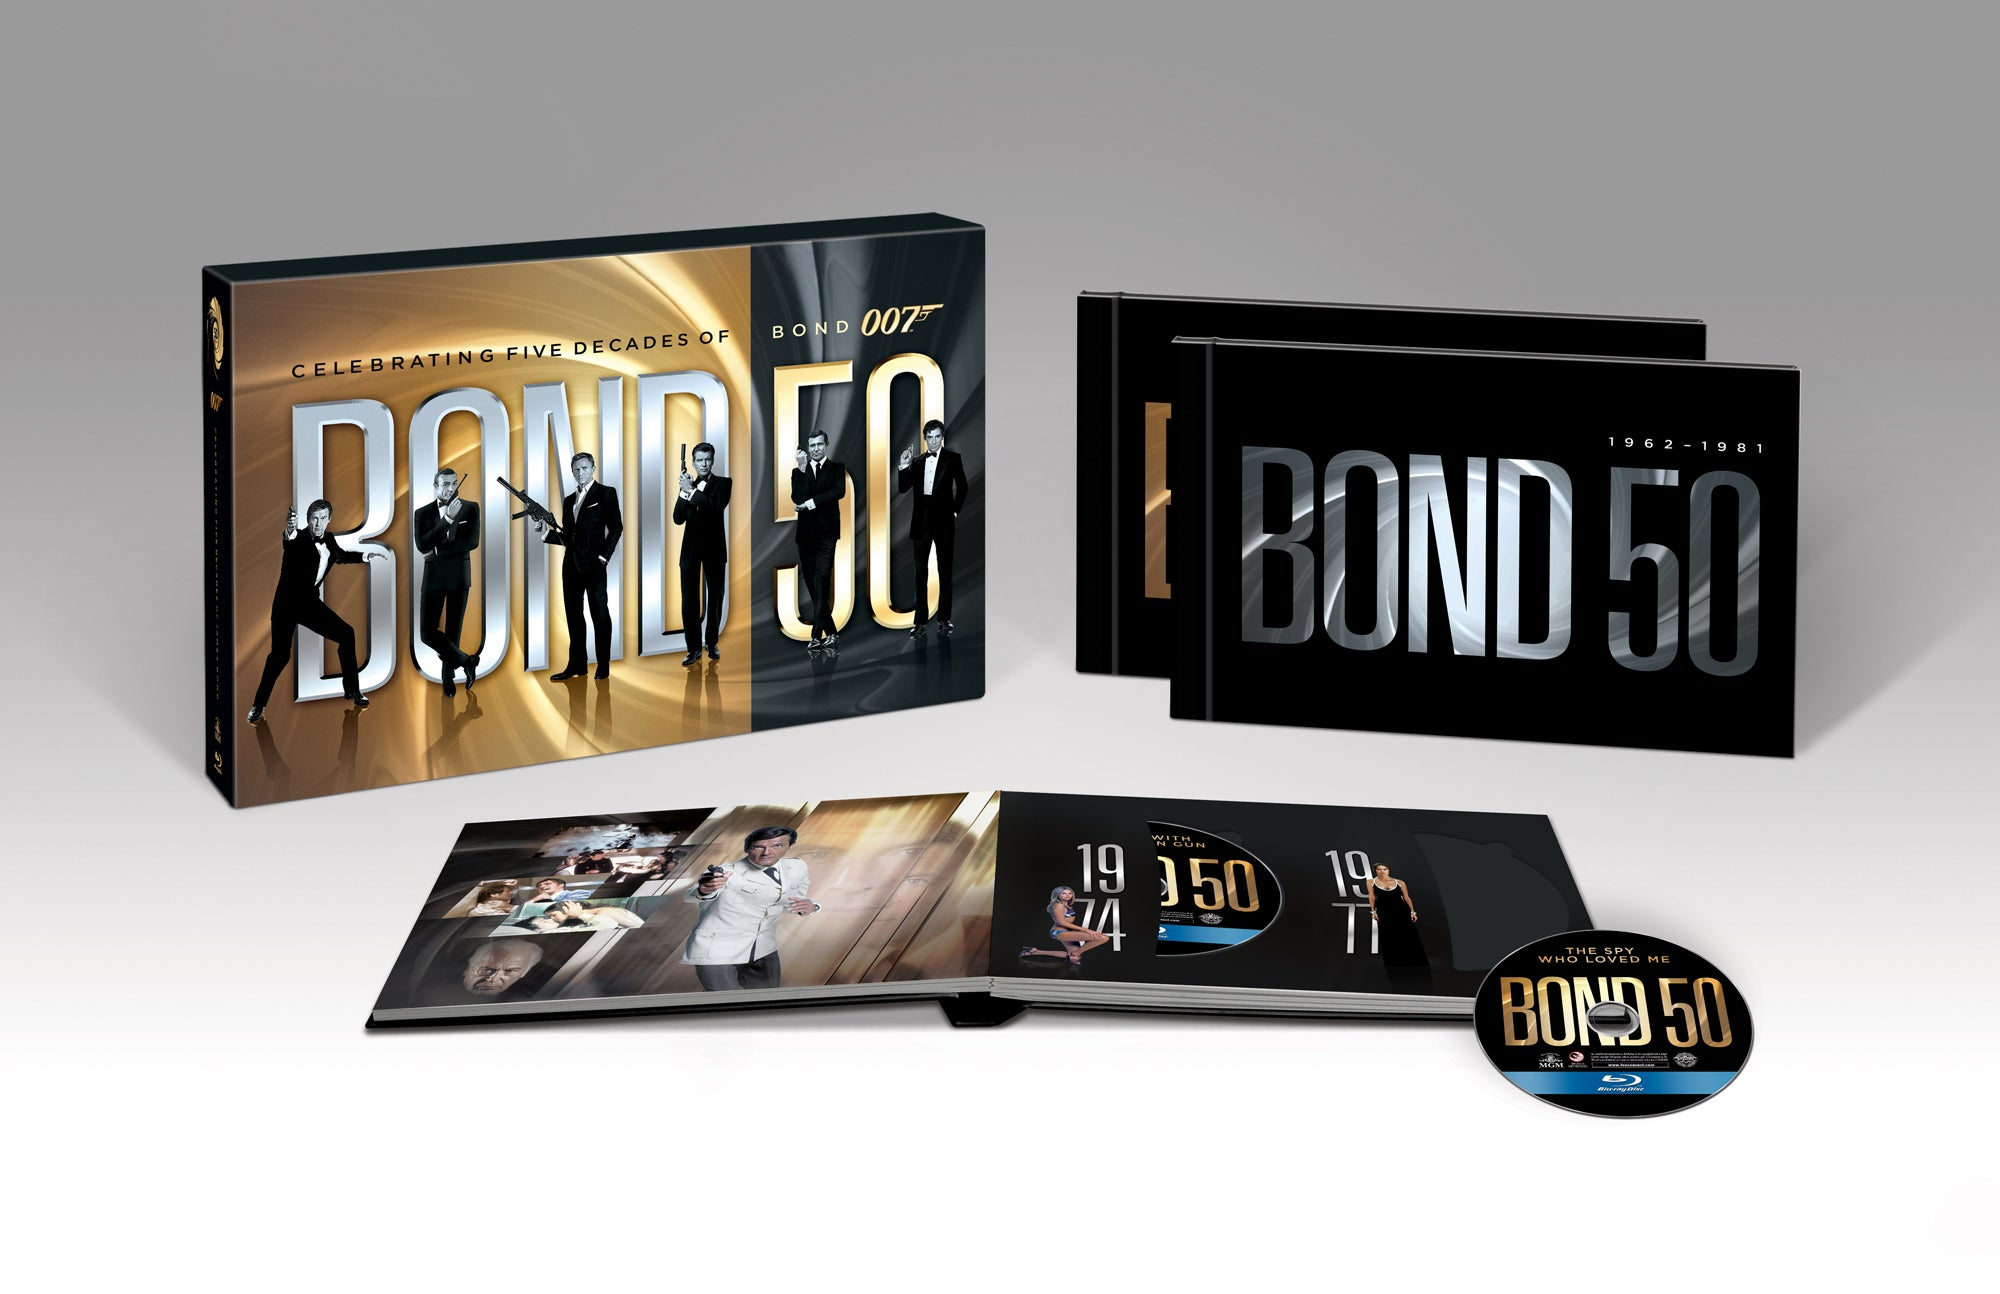 50 jaar james bond blu ray The Official James Bond 007 Website | Bond 50 on Blu ray 50 jaar james bond blu ray